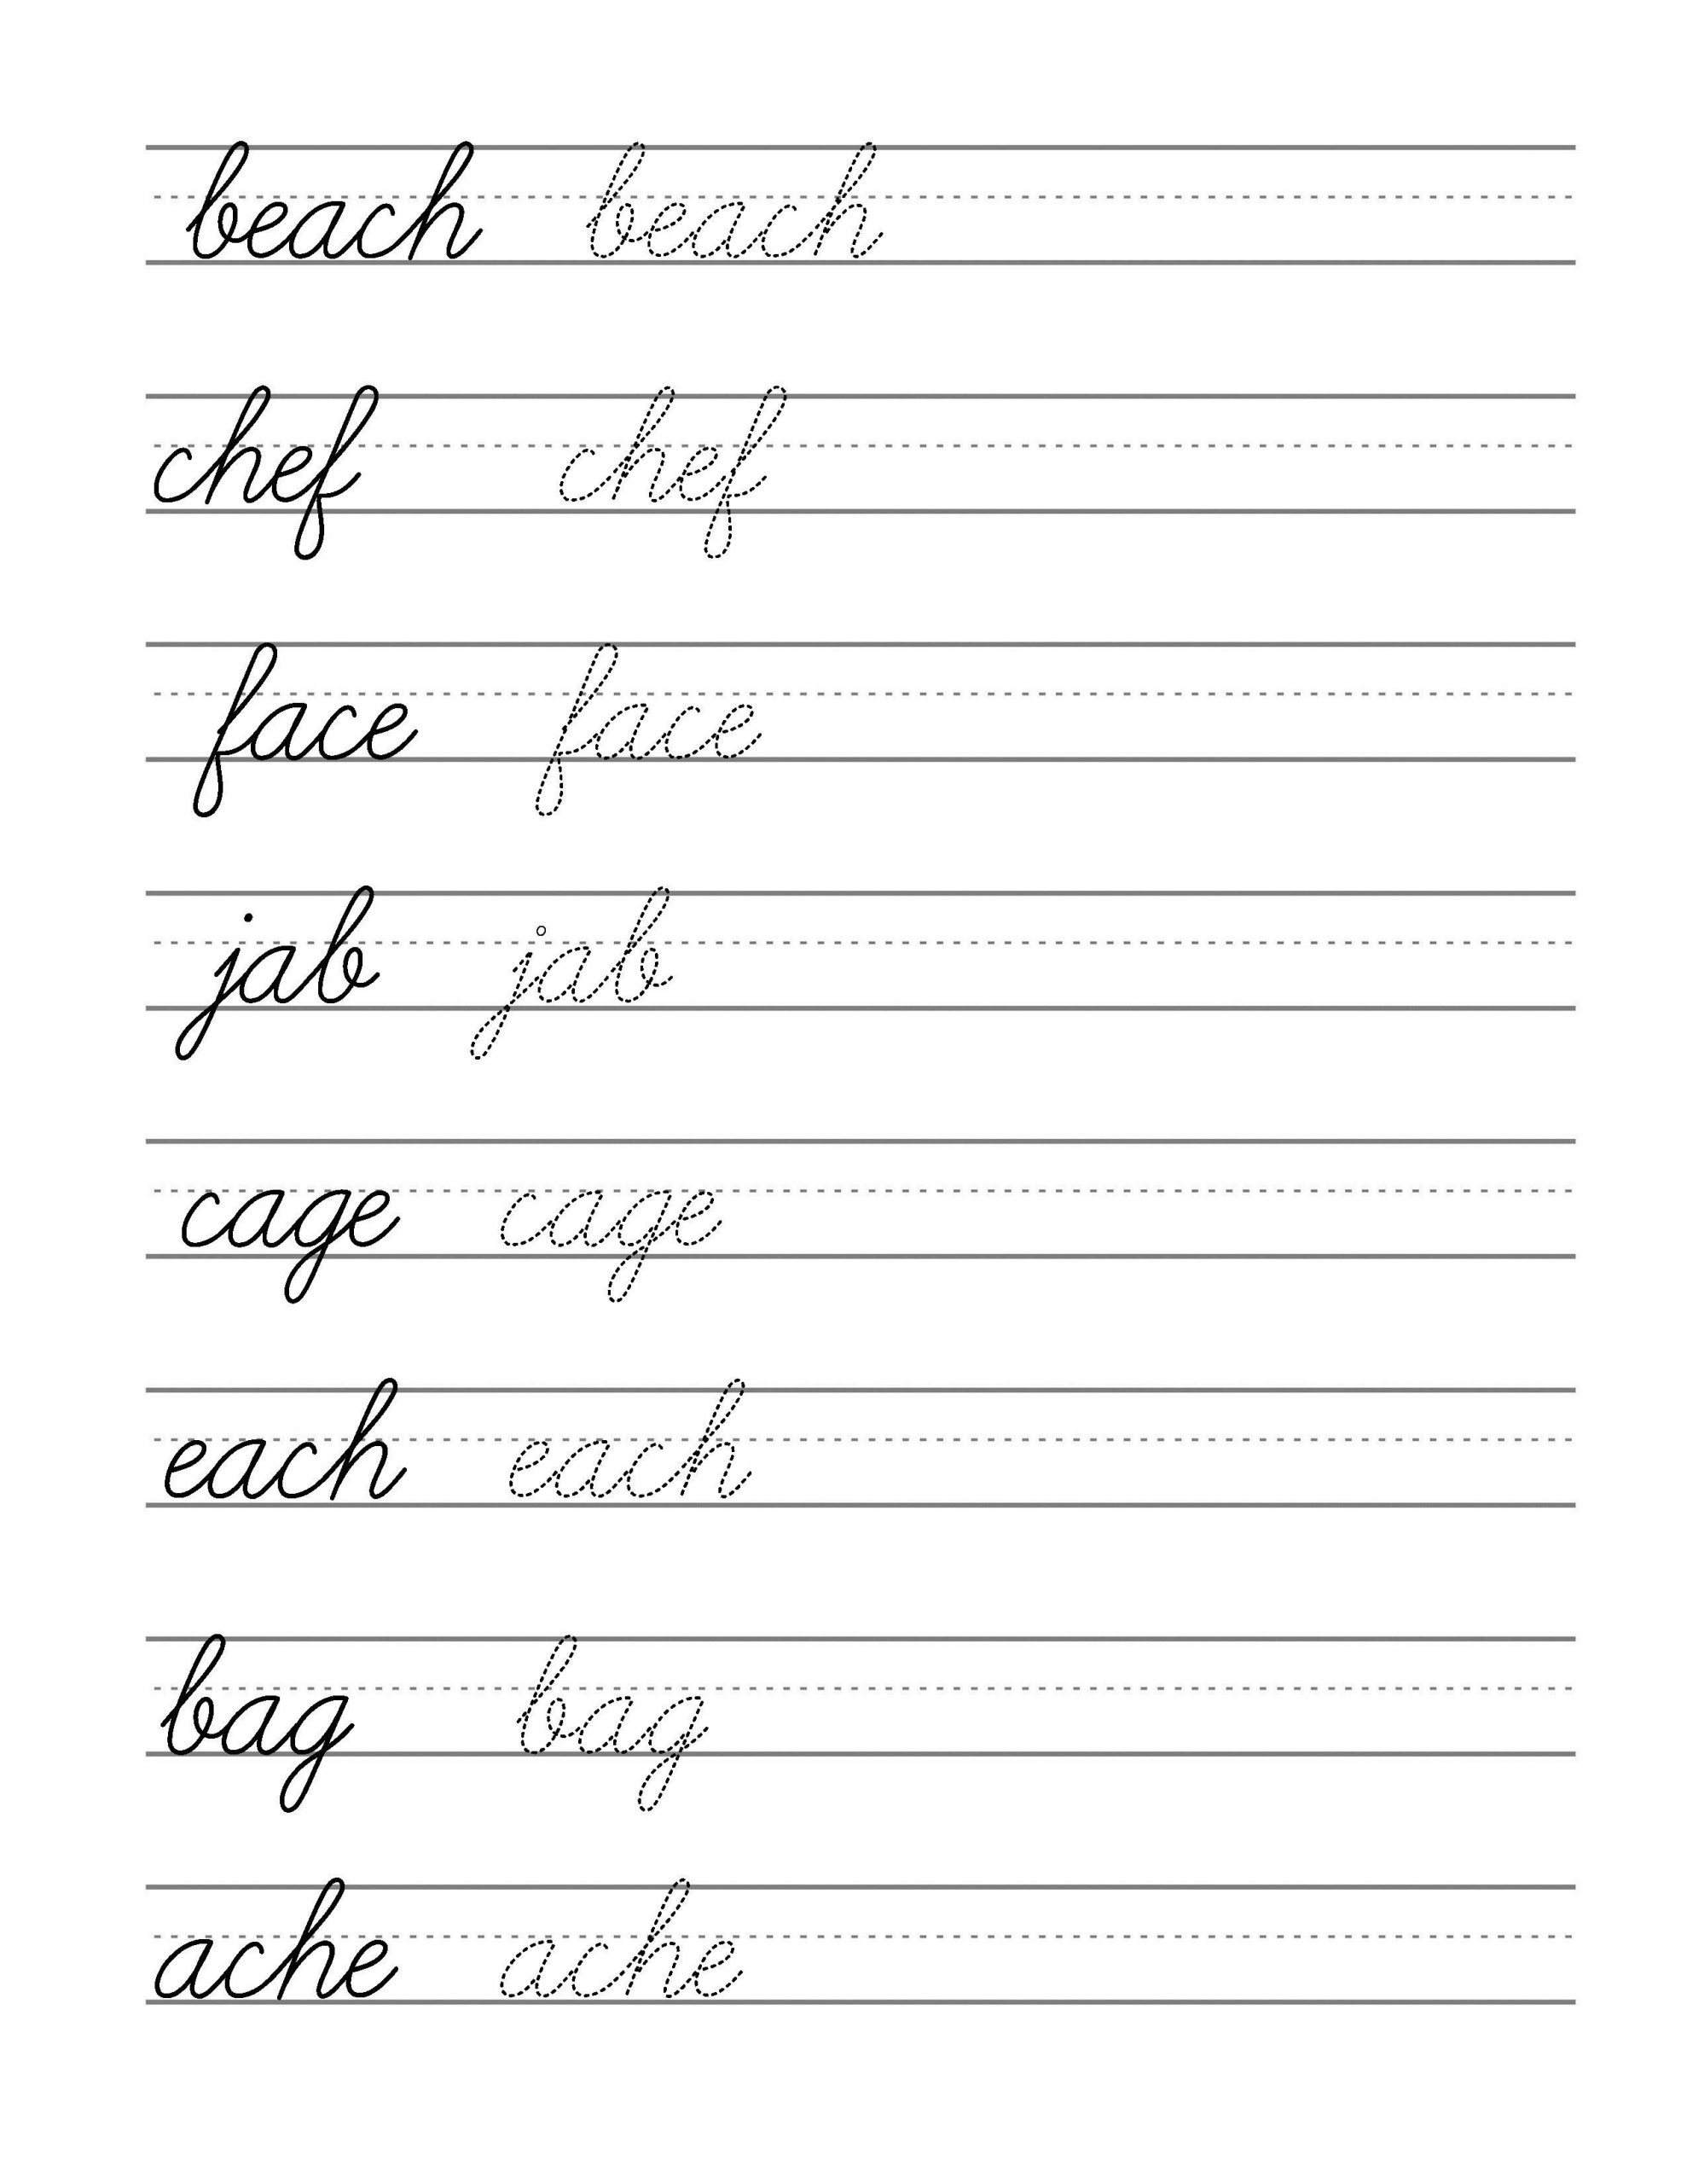 Printable Keyboarding Worksheets Free Beginning Cursive Writing Template Part 3